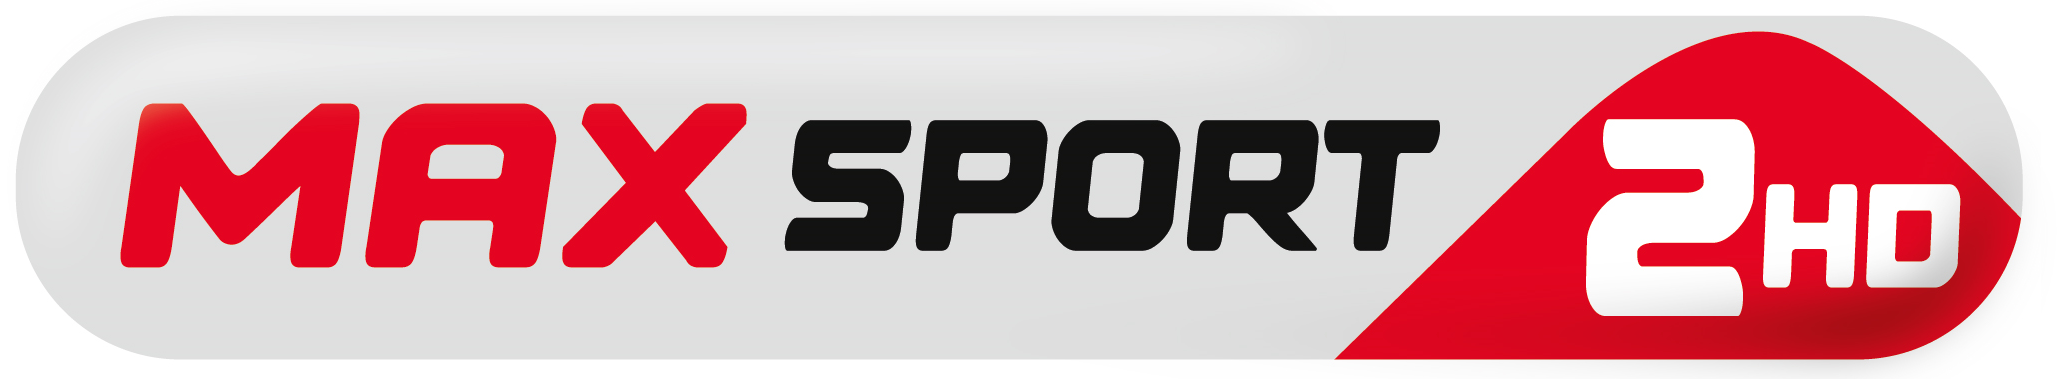 MAXSPORT 2 HD